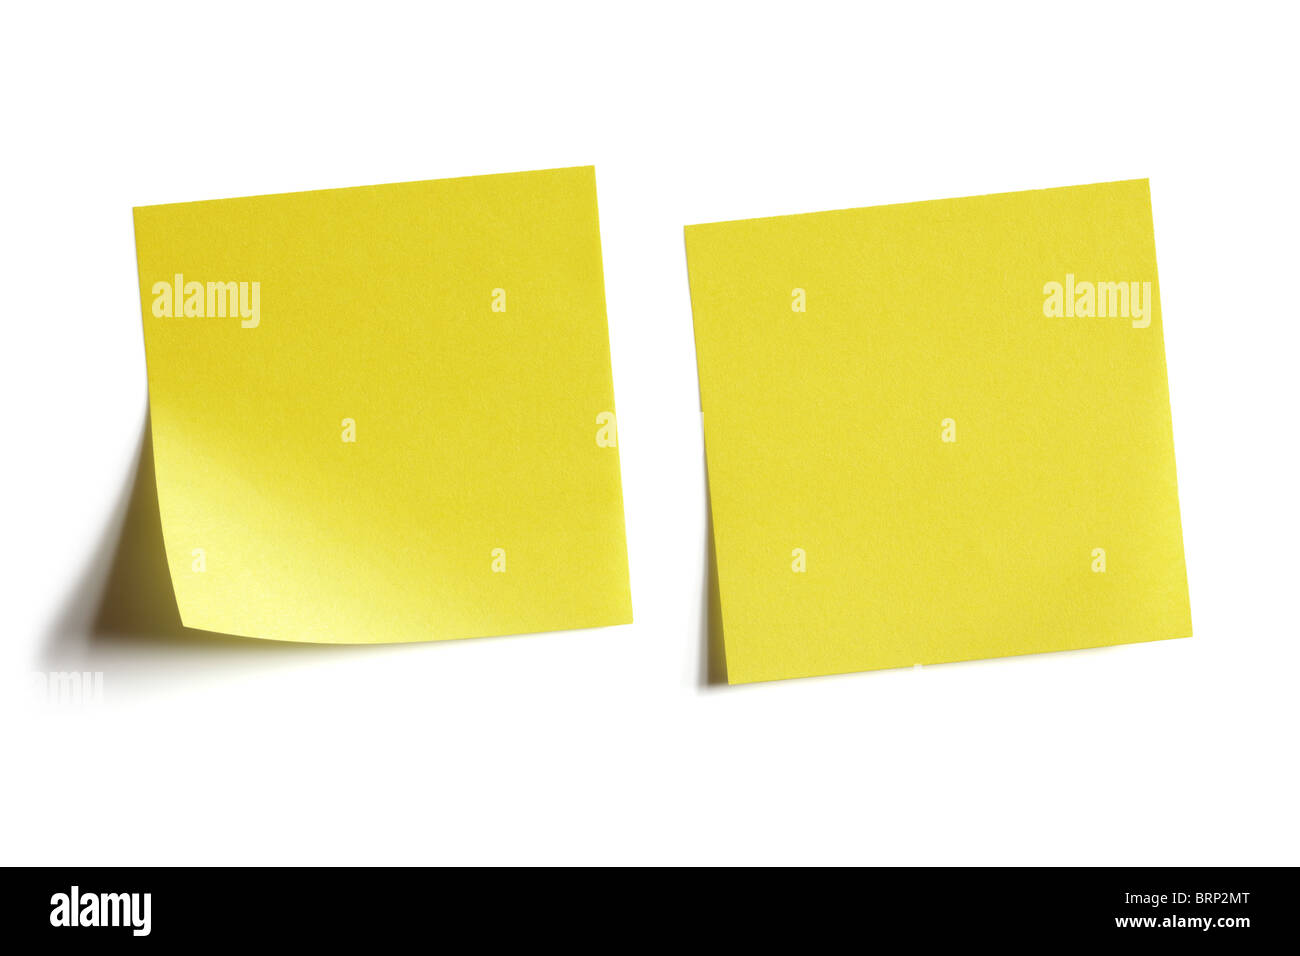 Yellow sticky note - Stock Image